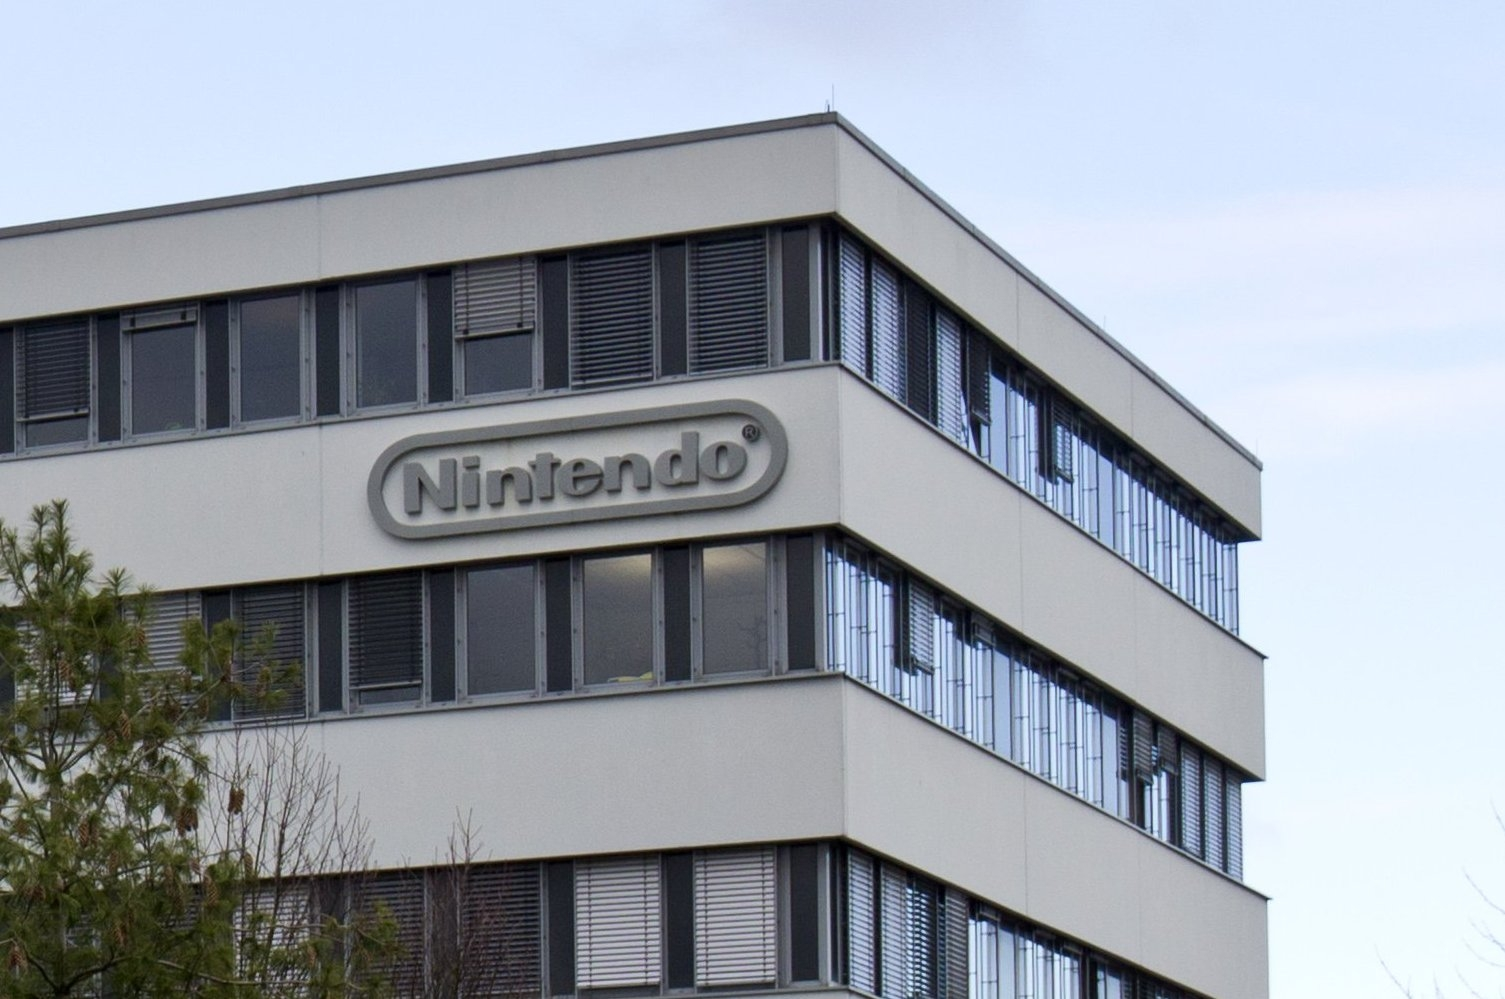 nintendo europe closing gro ostheim headquarters 130 jobs lost. Black Bedroom Furniture Sets. Home Design Ideas